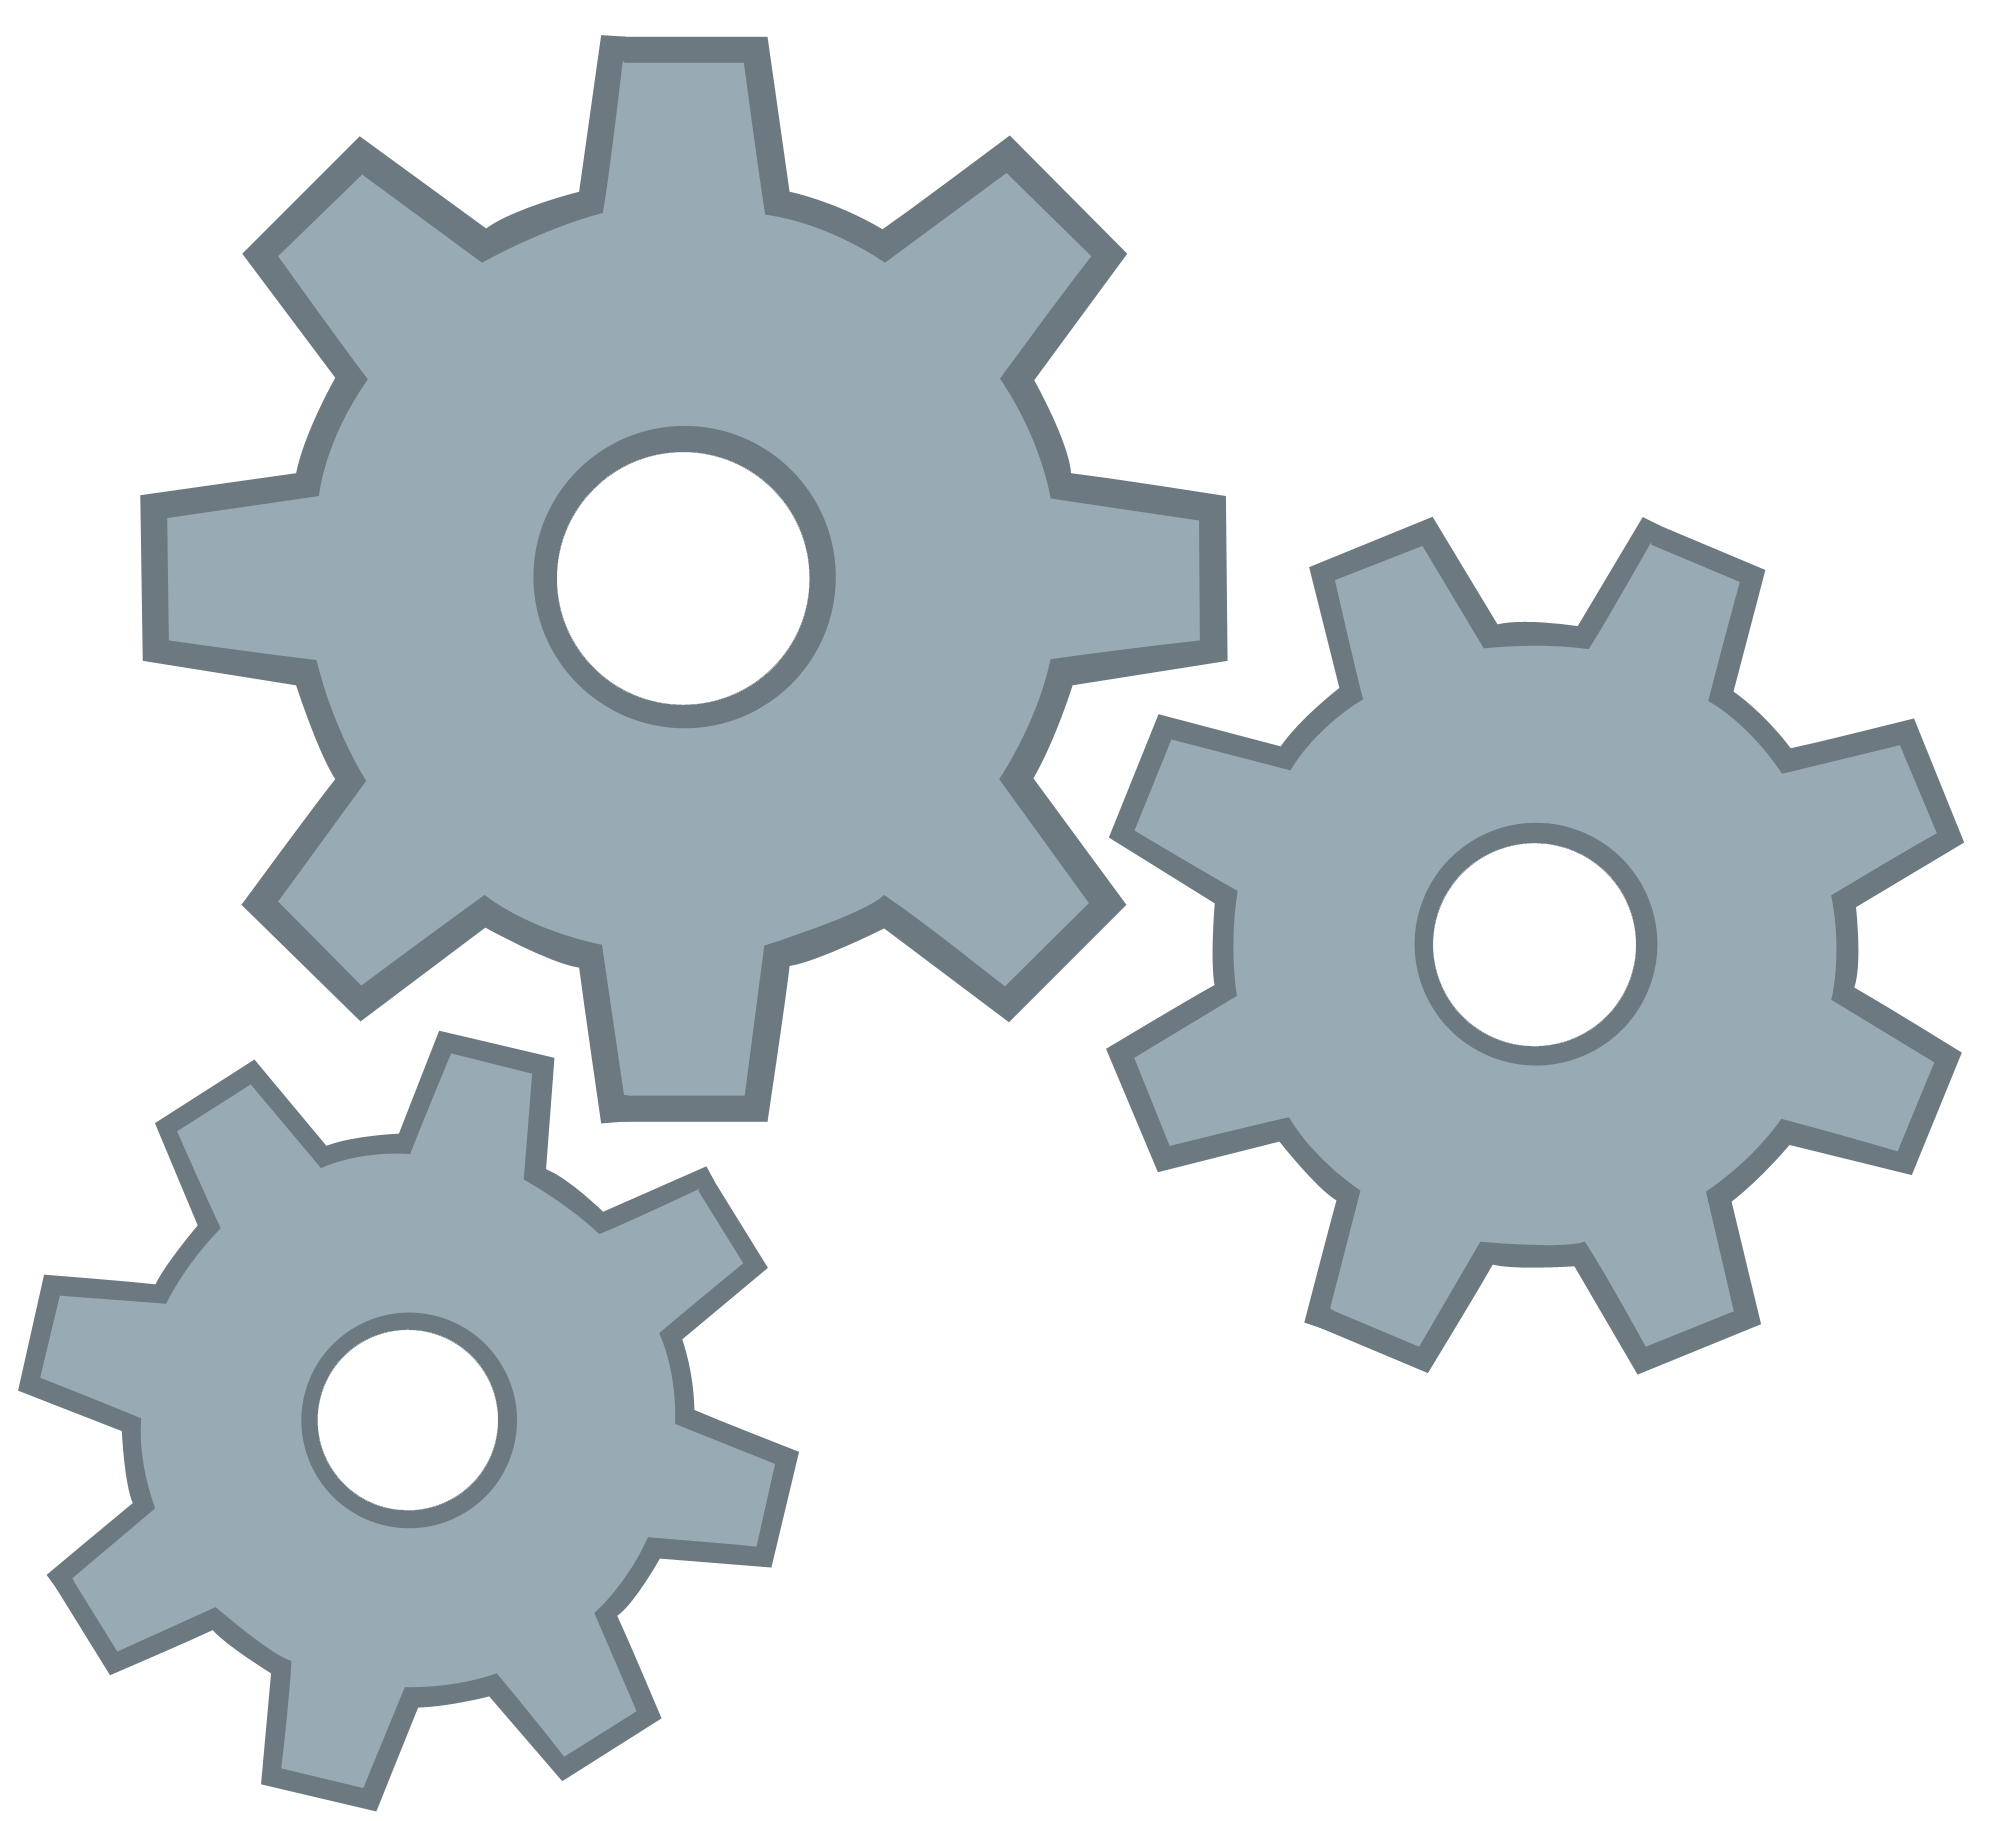 Gears clipart #11, Download drawings